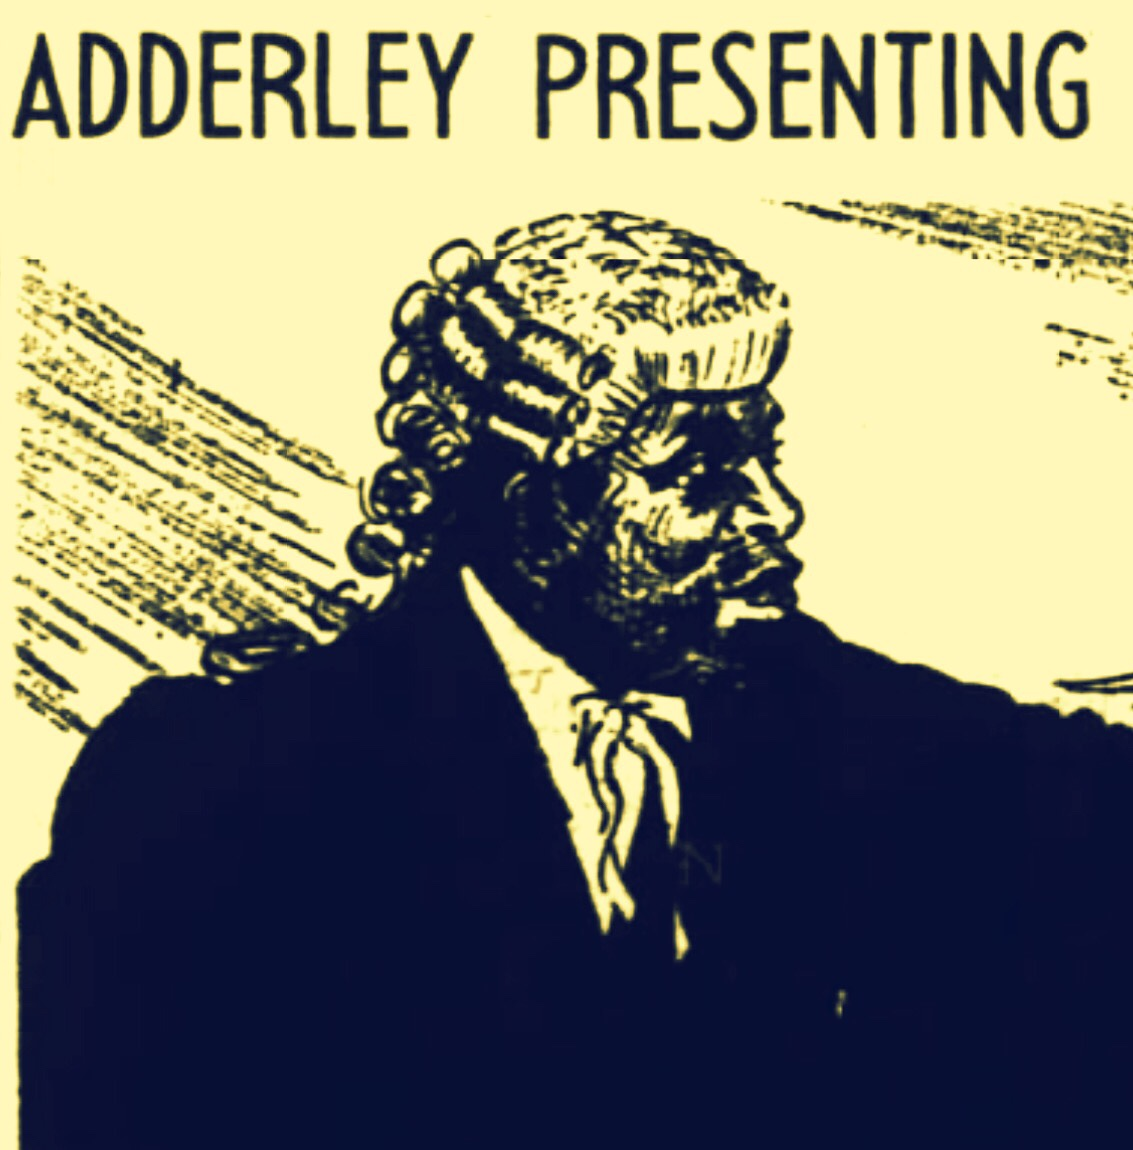 Most Brilliant Speech Ever Made at Bahamas Bar by Negro Barrister the Hon. A. F. Adderley During Oakes Murder Trial 1943